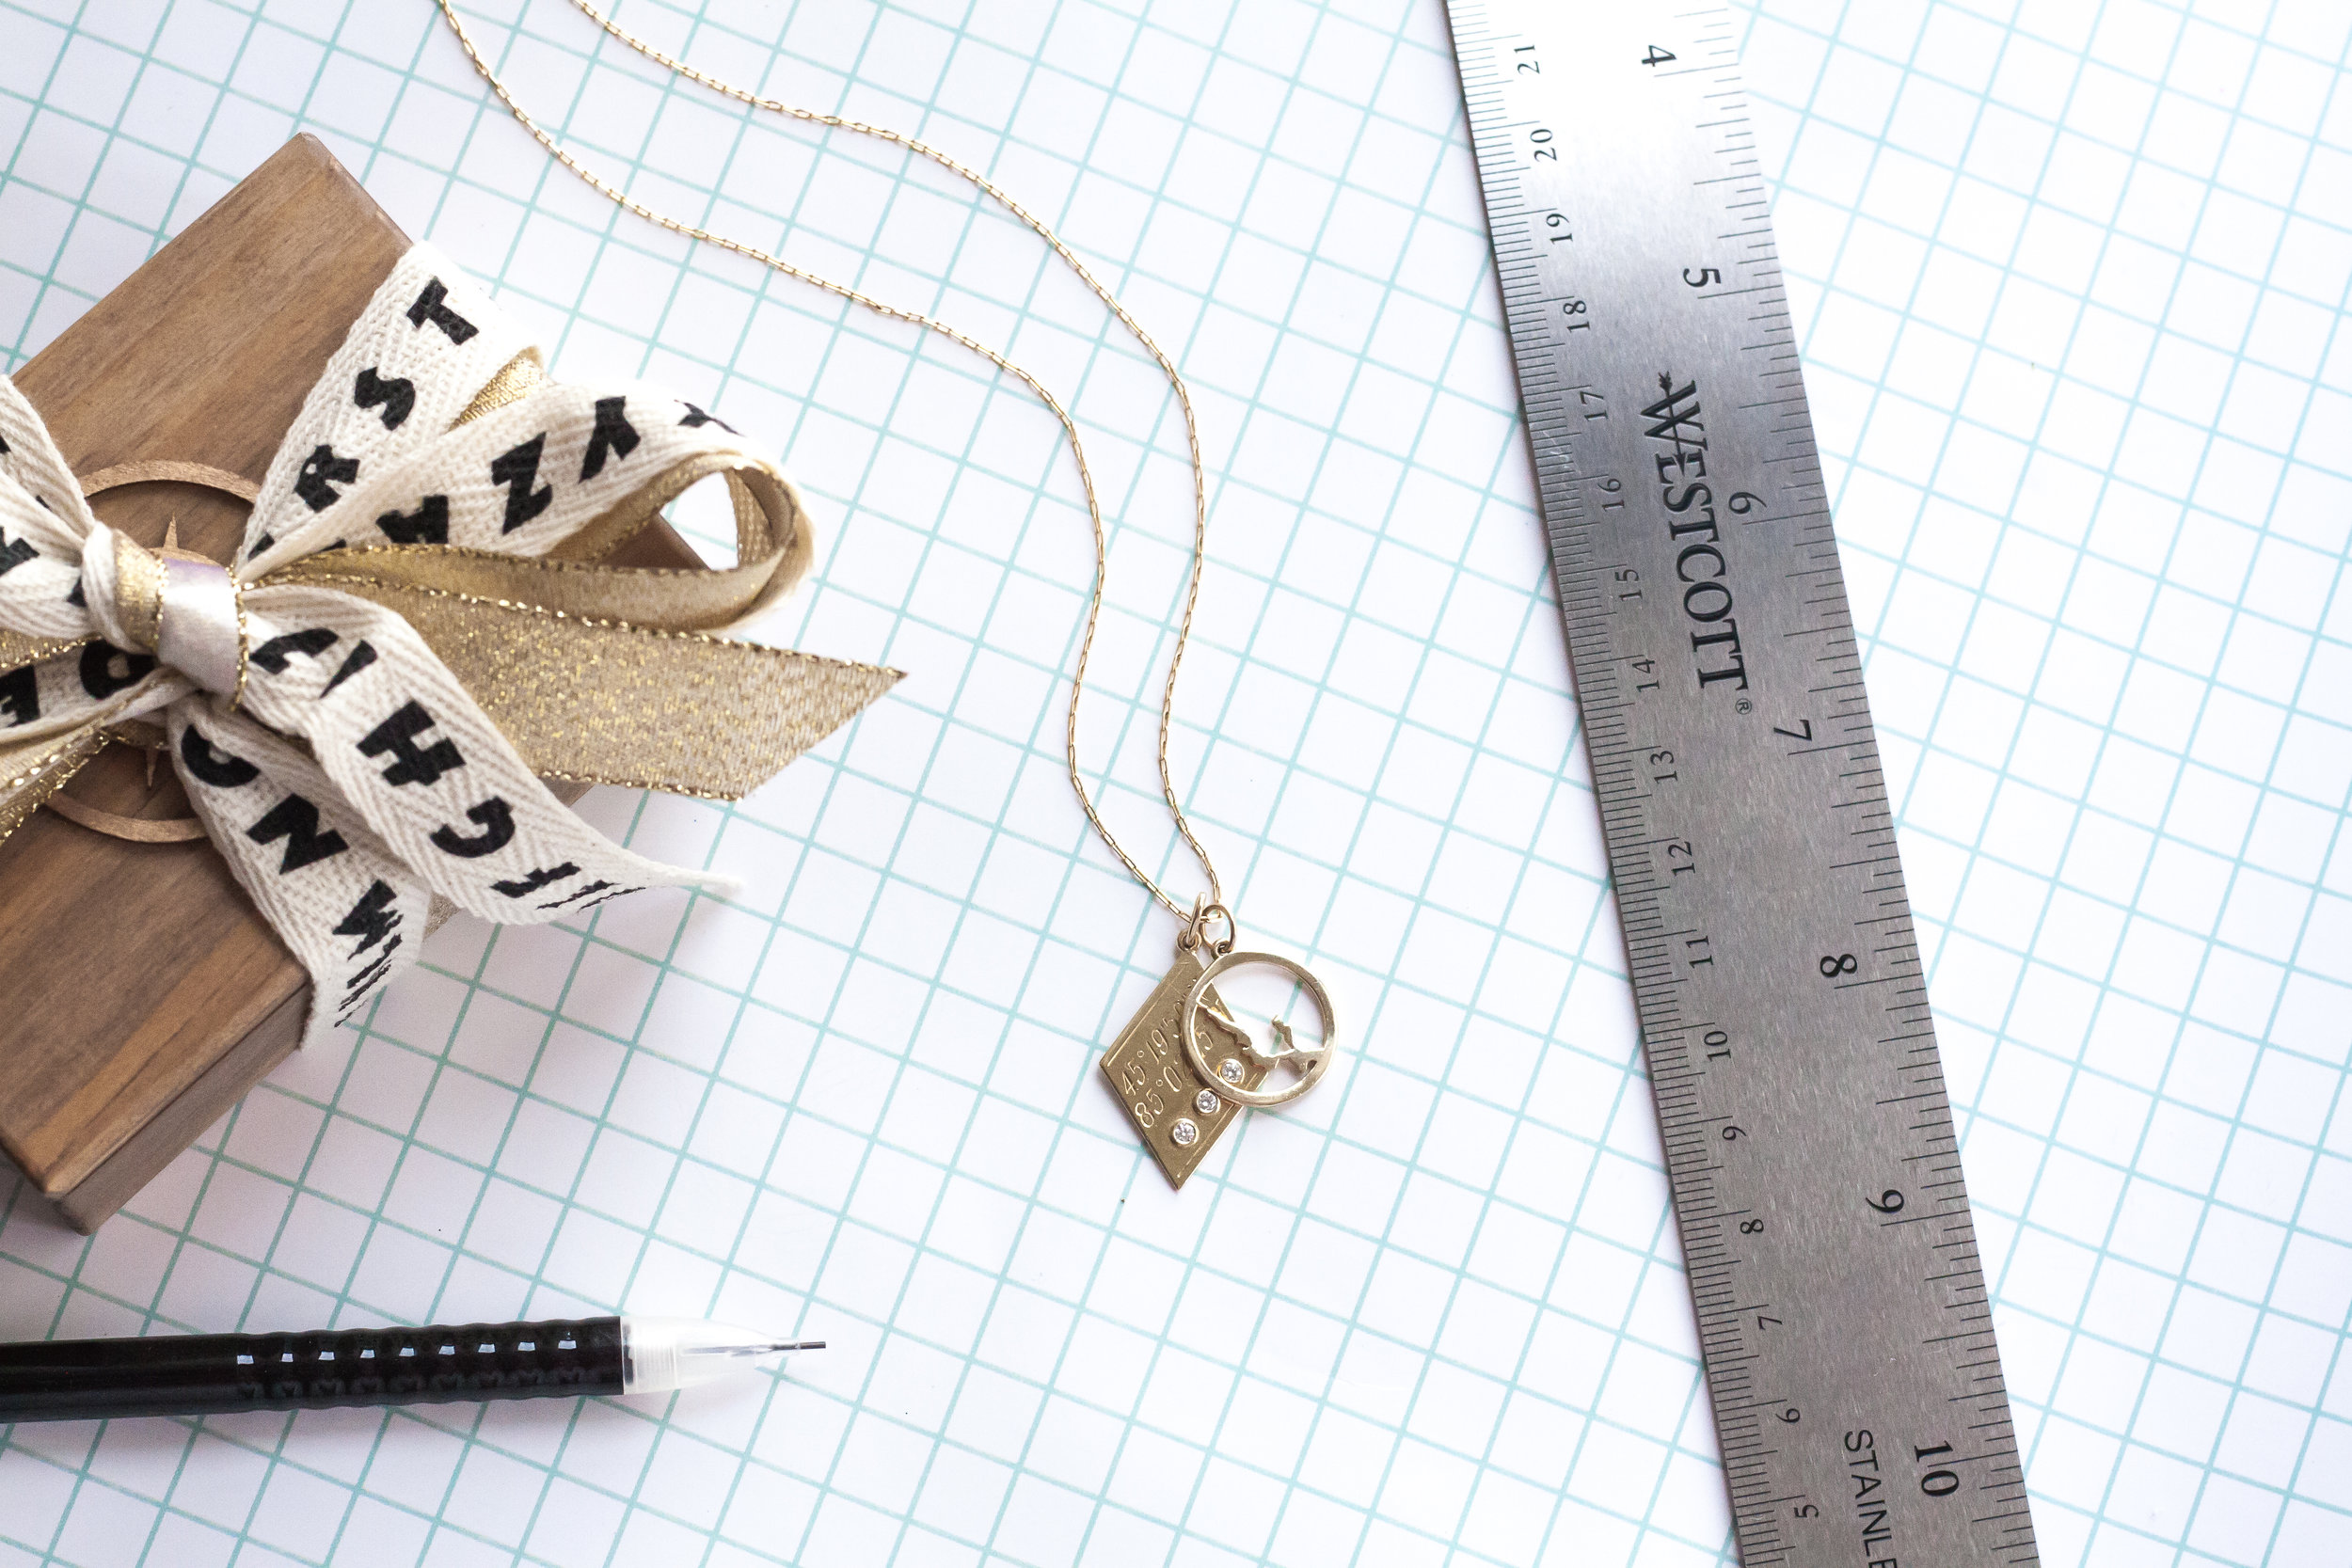 kerry gilligan jewelry back to school walloon lake necklace with custom coordinates pendant 14k yellow gold and diamonds.jpg